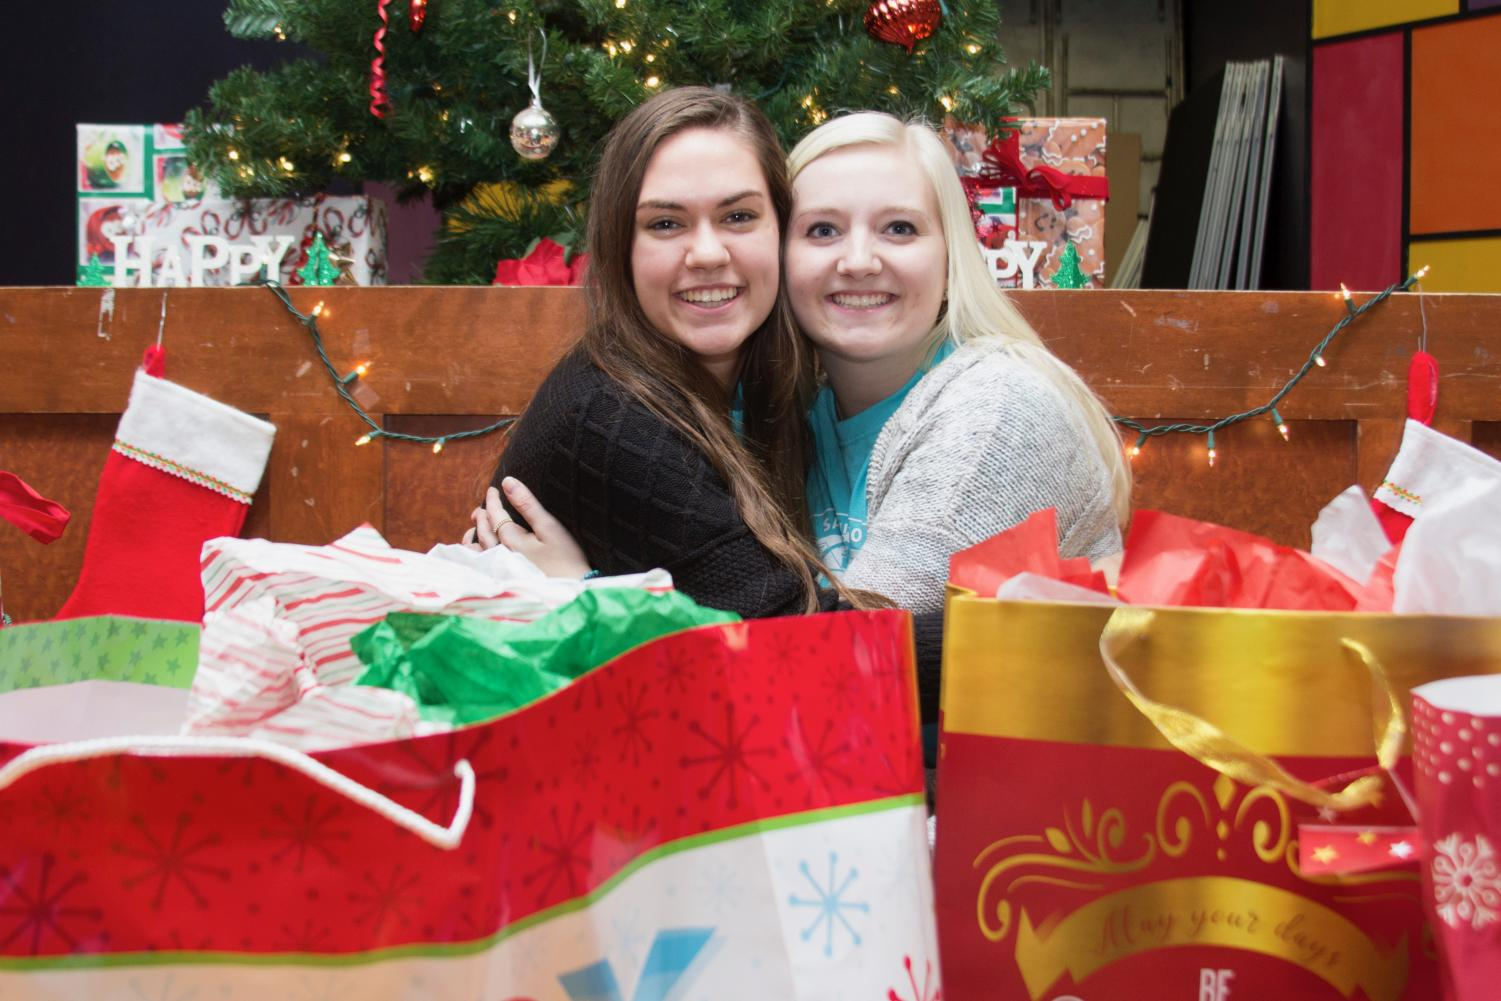 Taylor Fishwild ('20) and Jordanne Twig ('20) participated in Christmas Cheer.